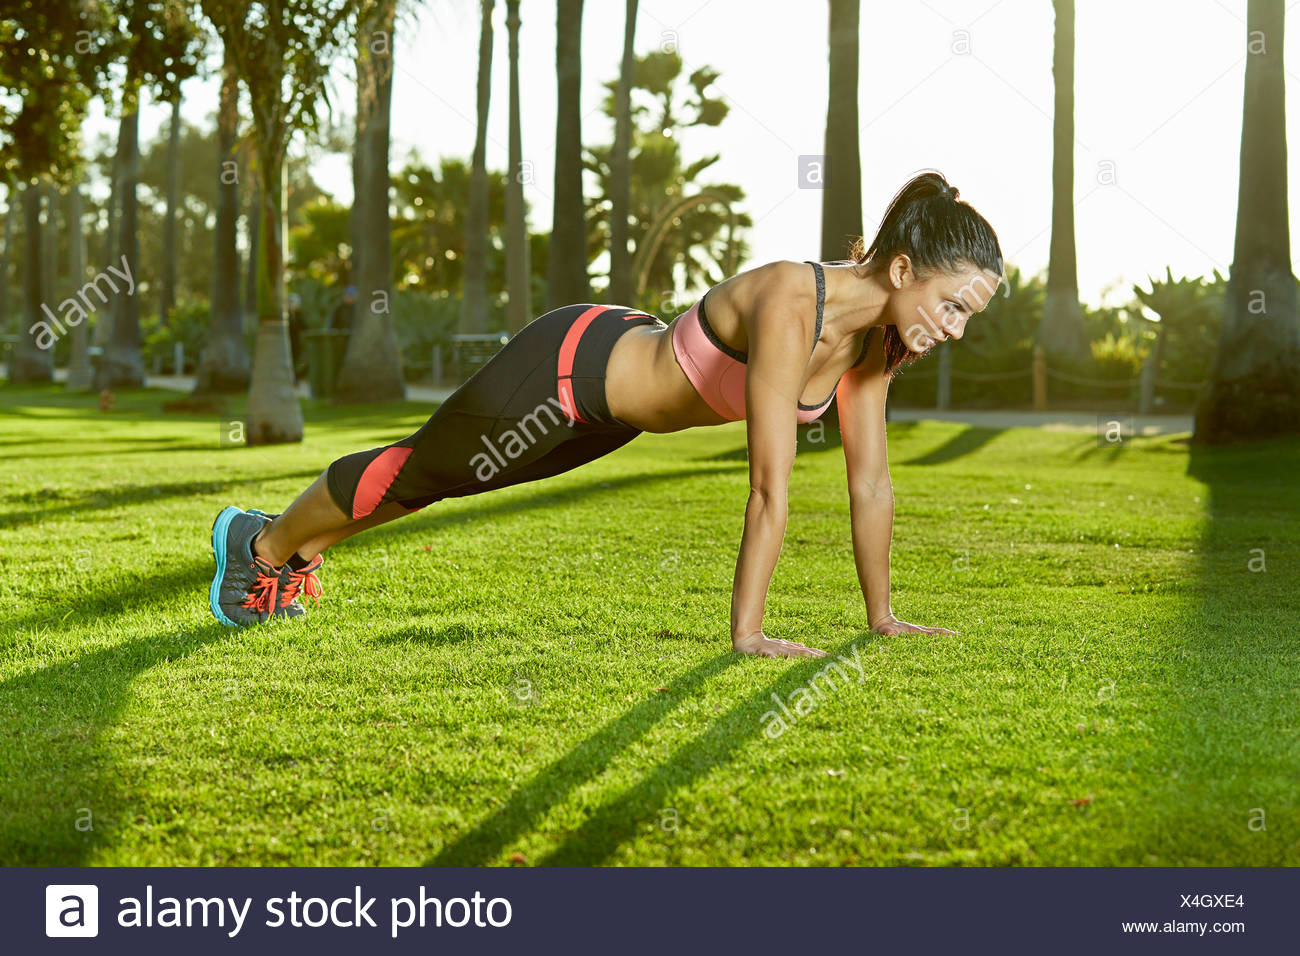 Mid adult woman doing plank exercise - Stock Image